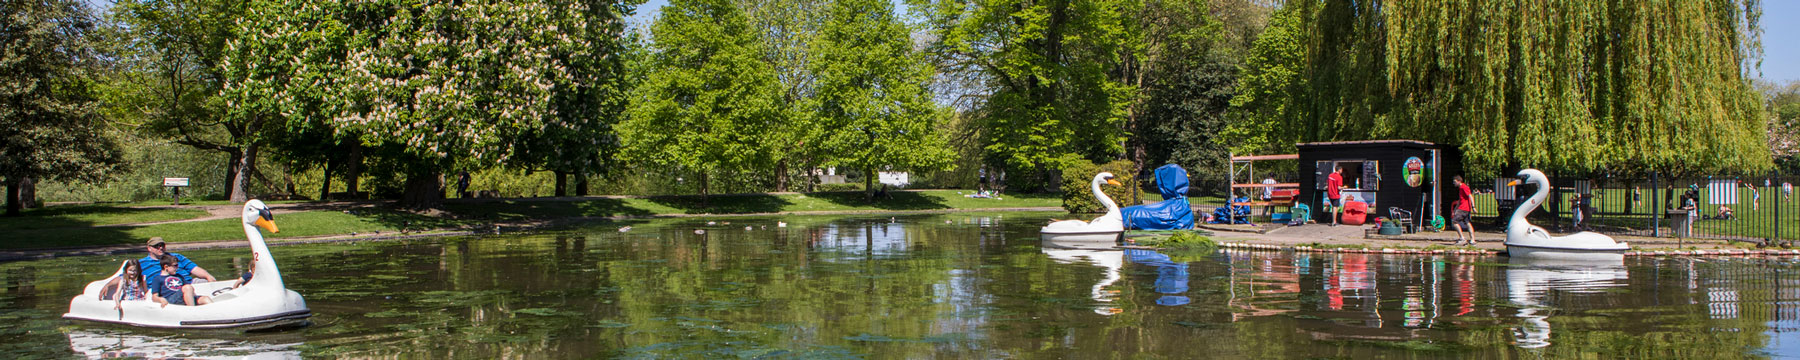 The boating lake at Colchester Castle Park